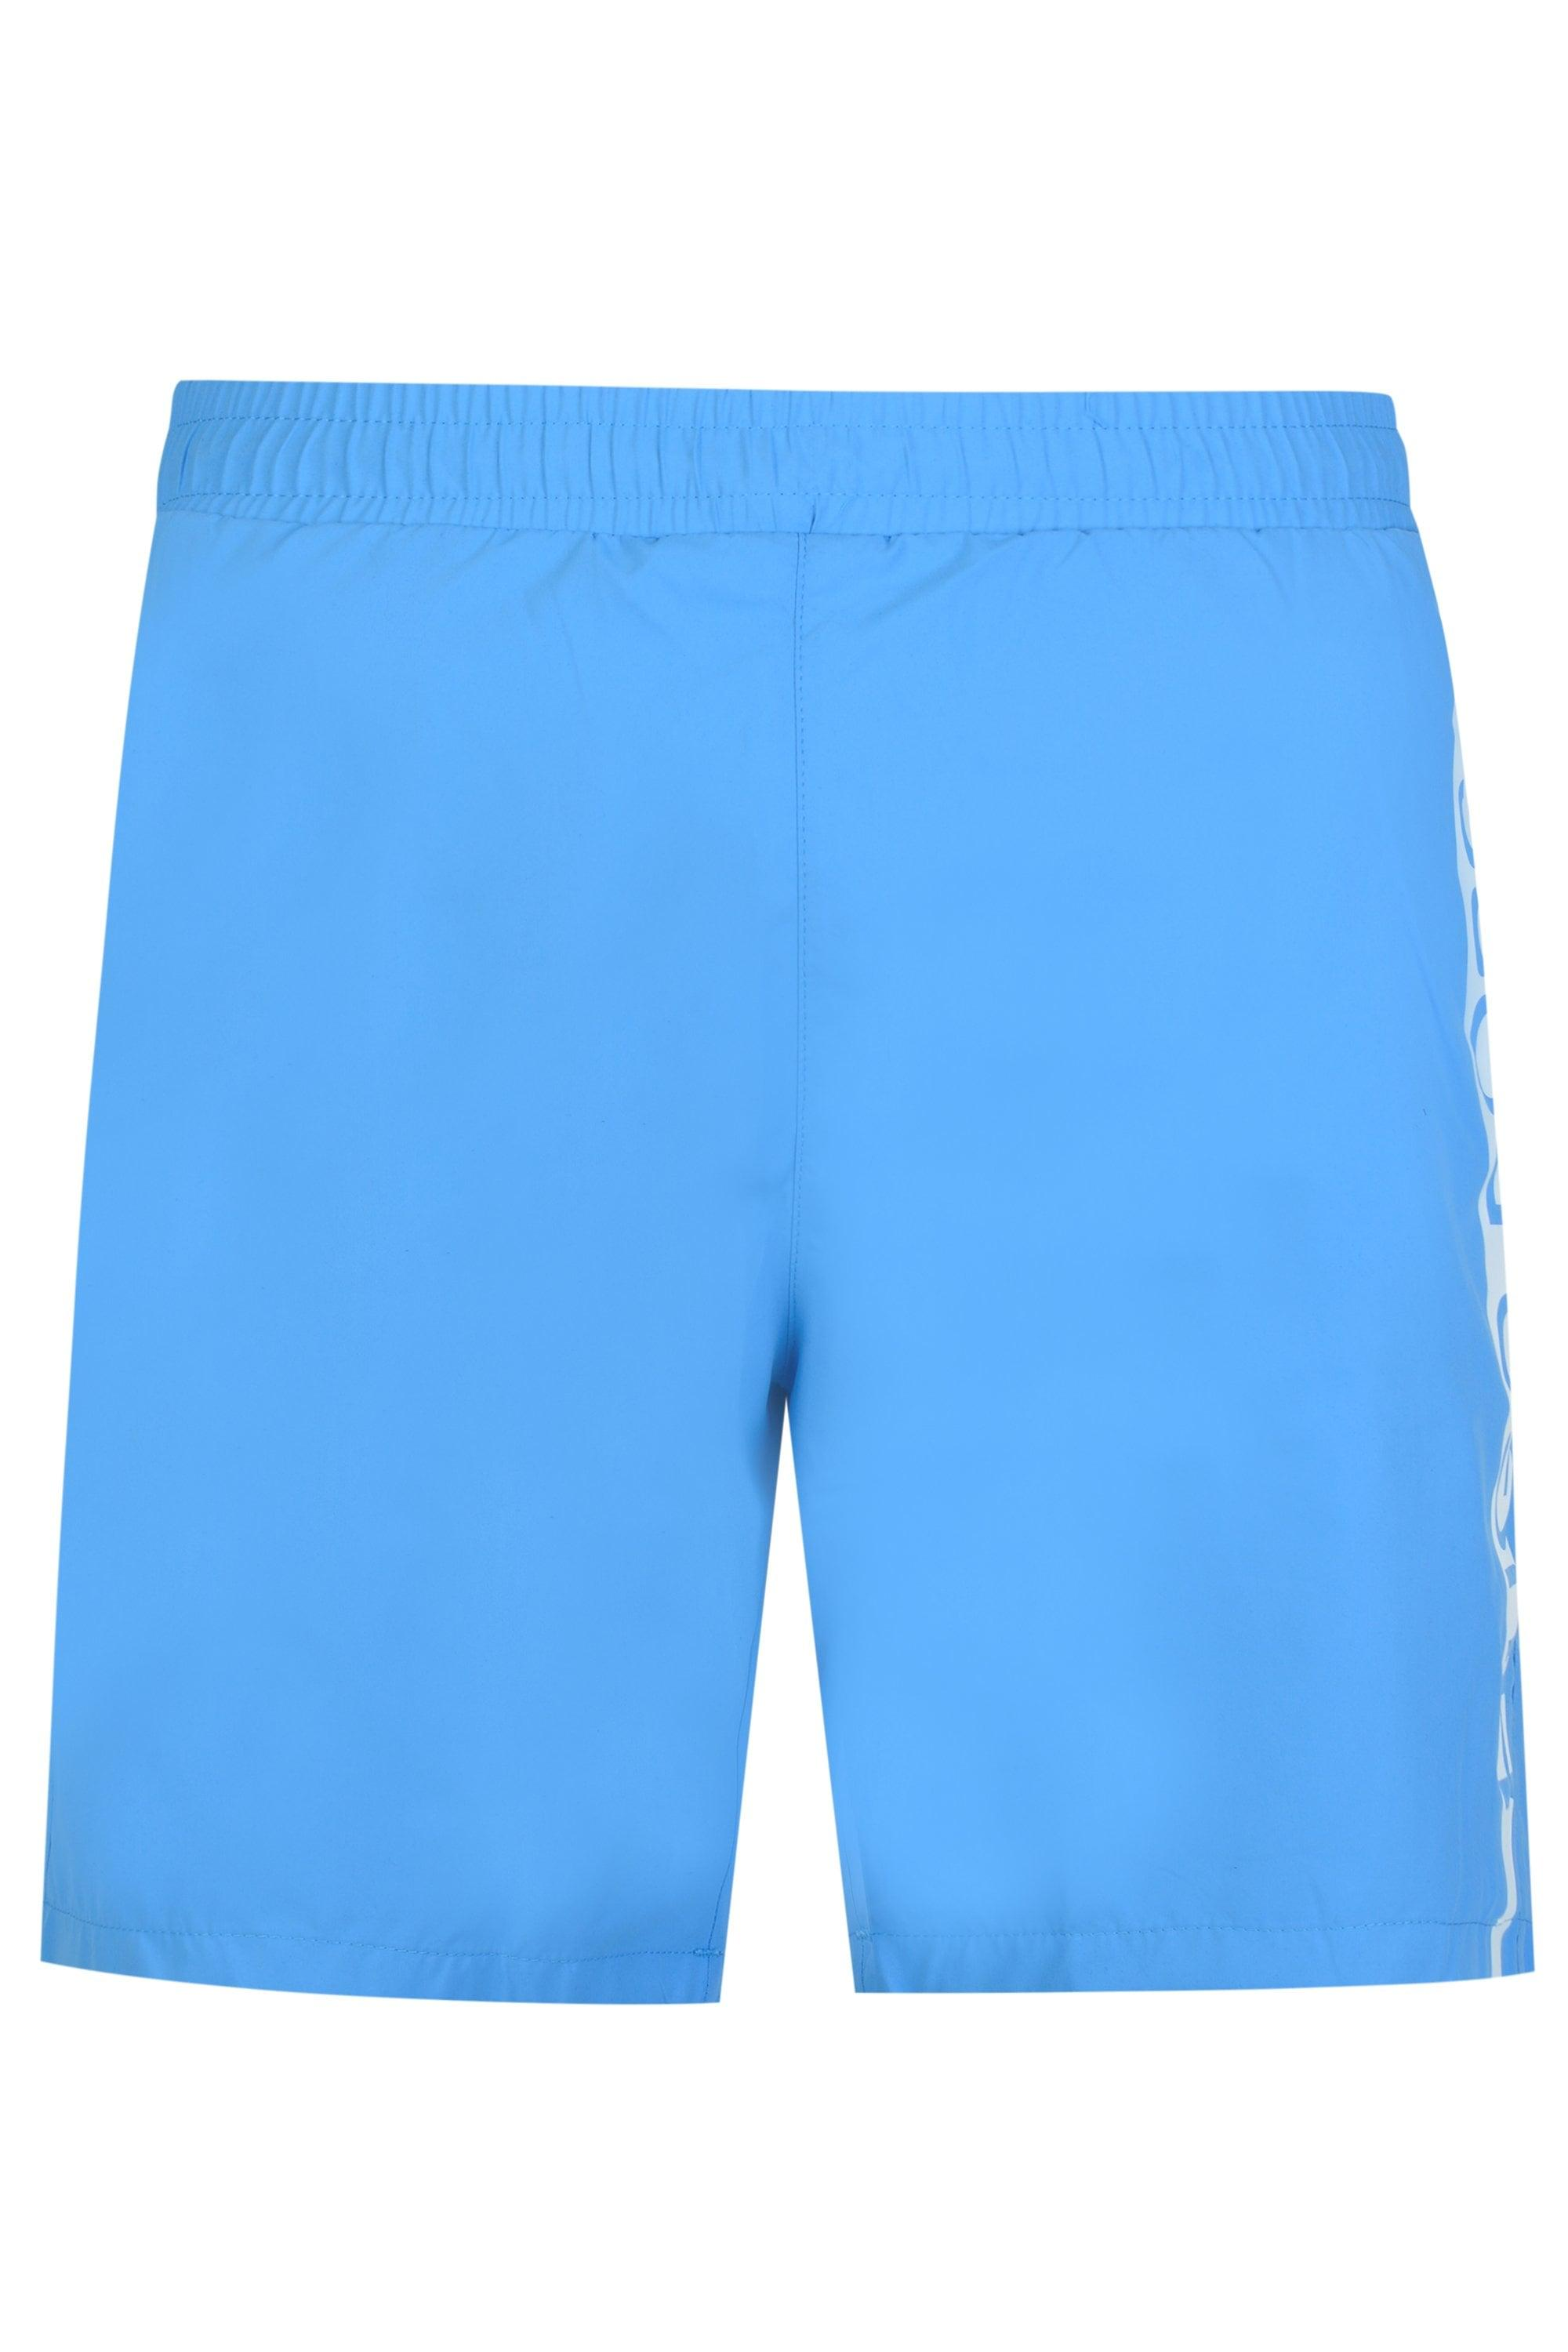 b5c142768e BOSS. Men's Blue Hugo Dolphin Swim Shorts. £55 From Circle Fashion